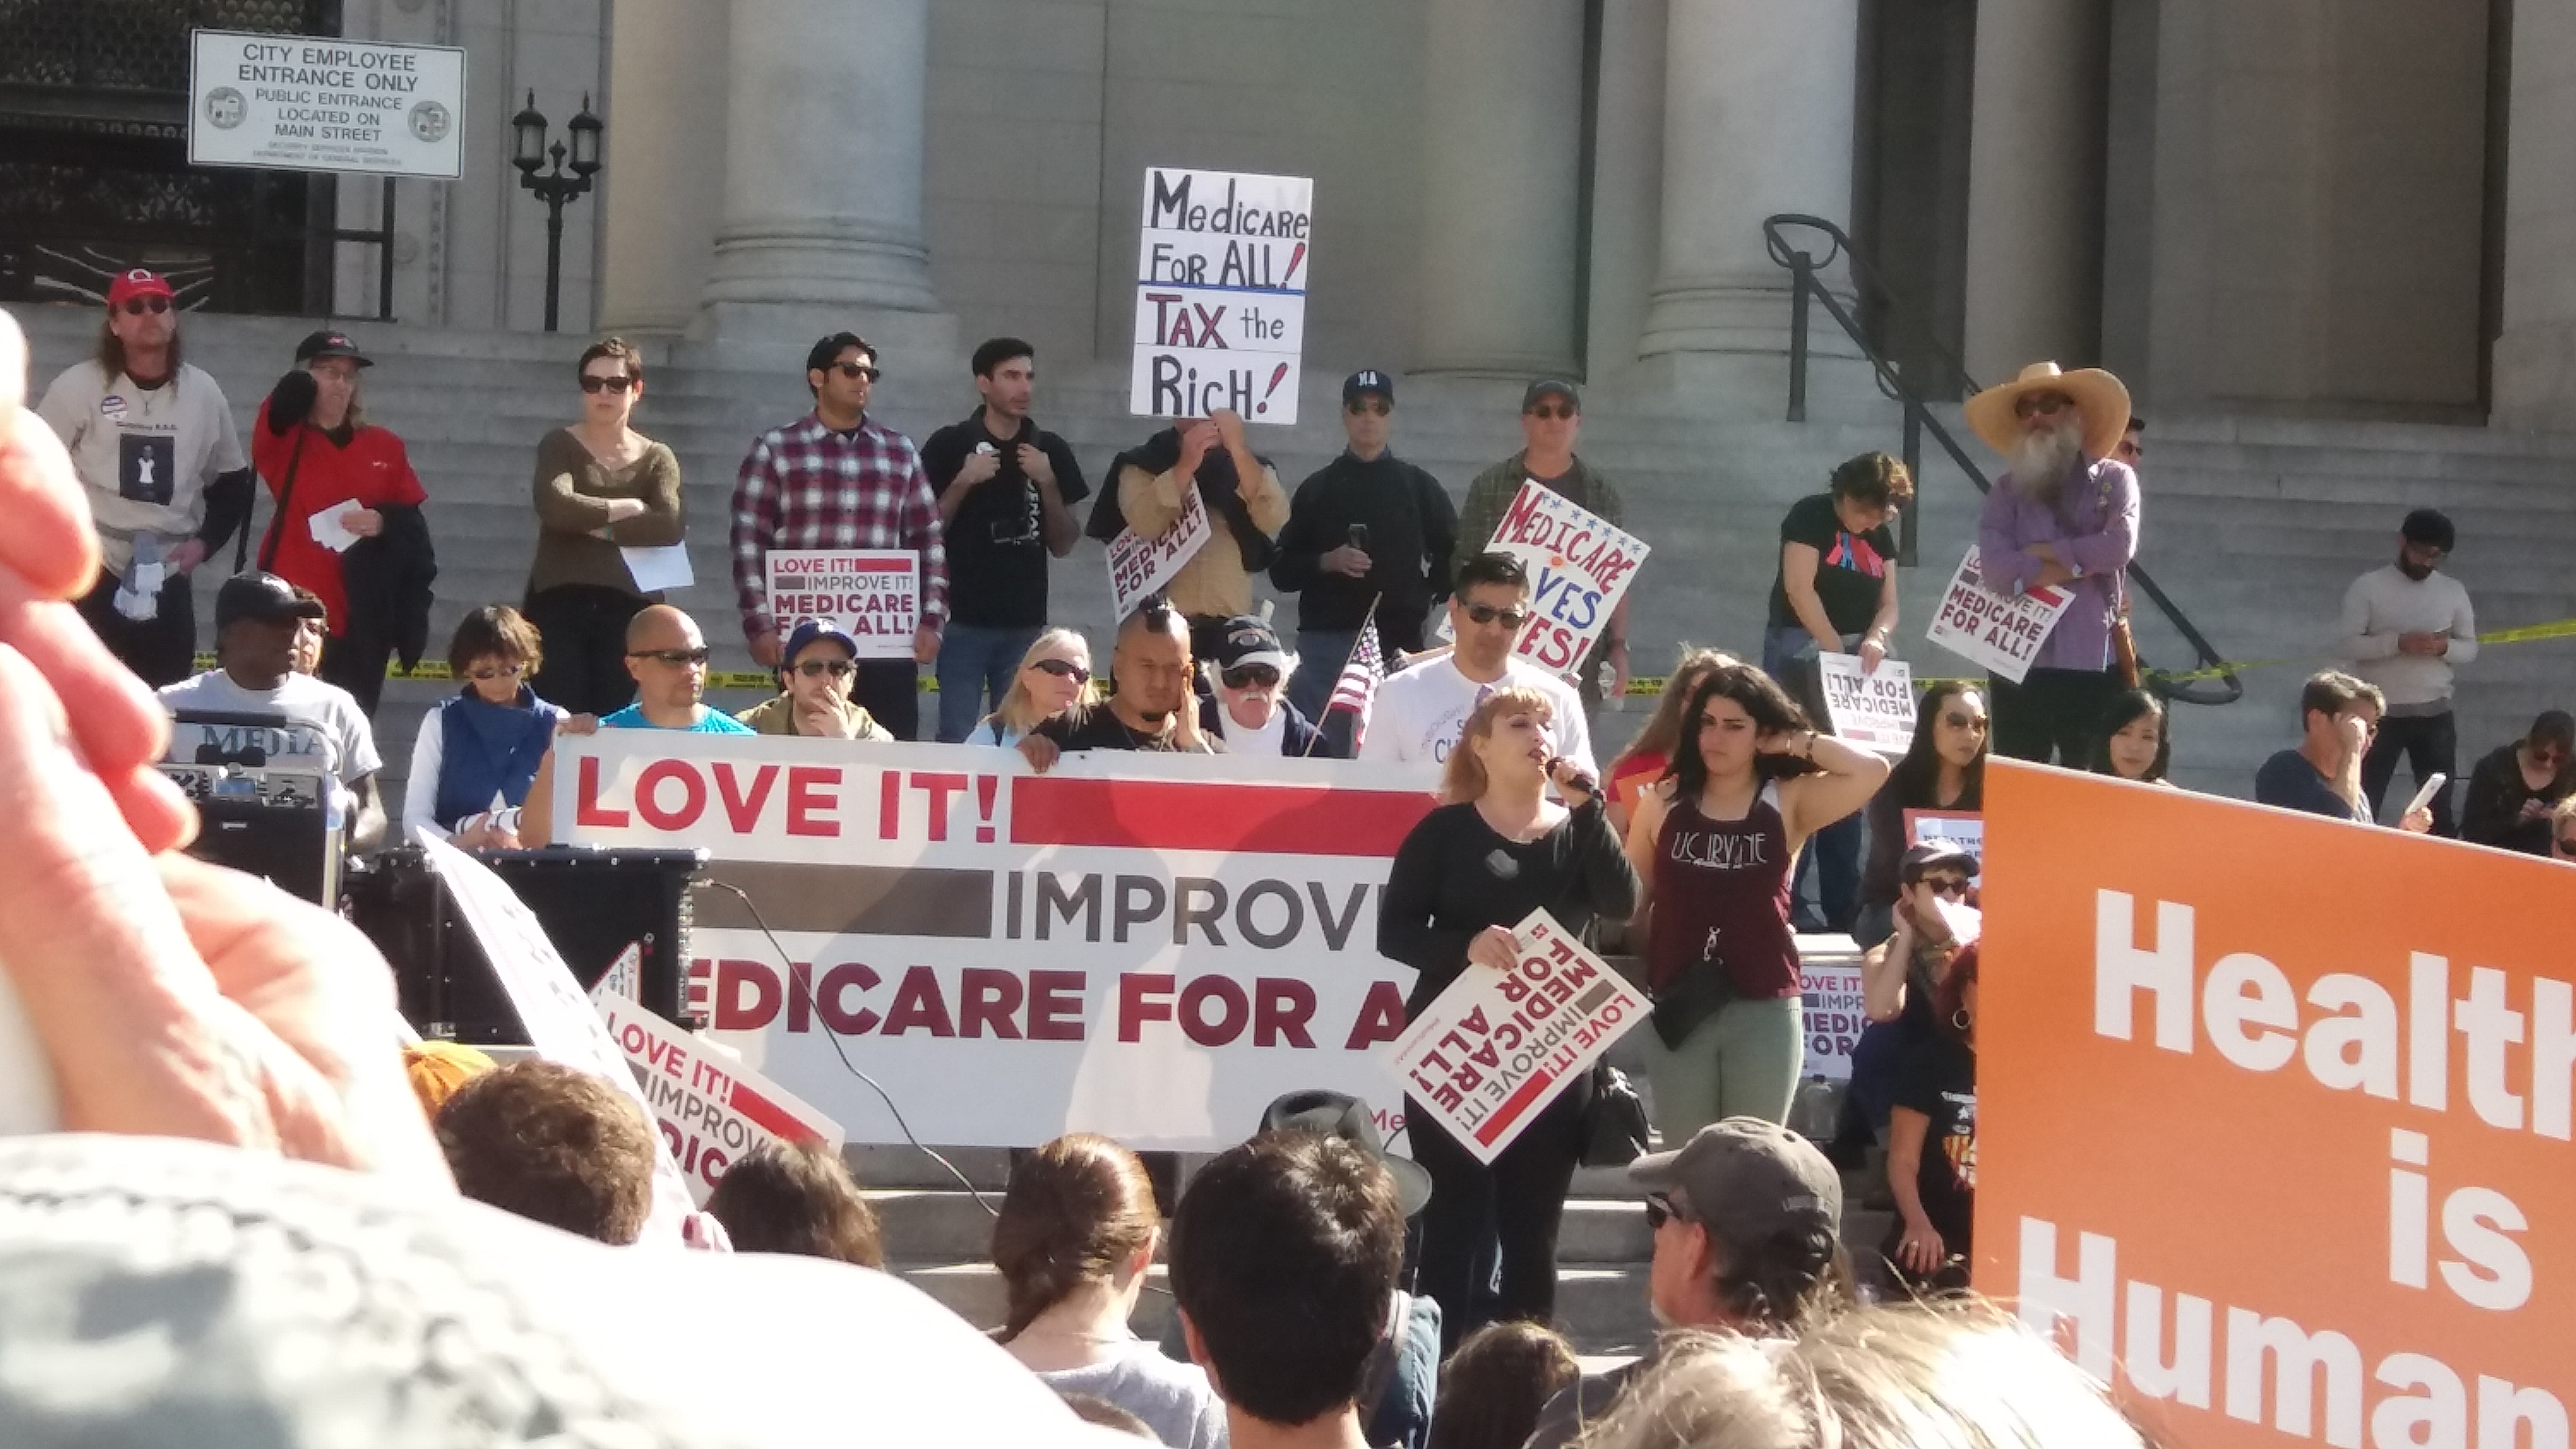 A February rally for single payer health care in Los Angeles